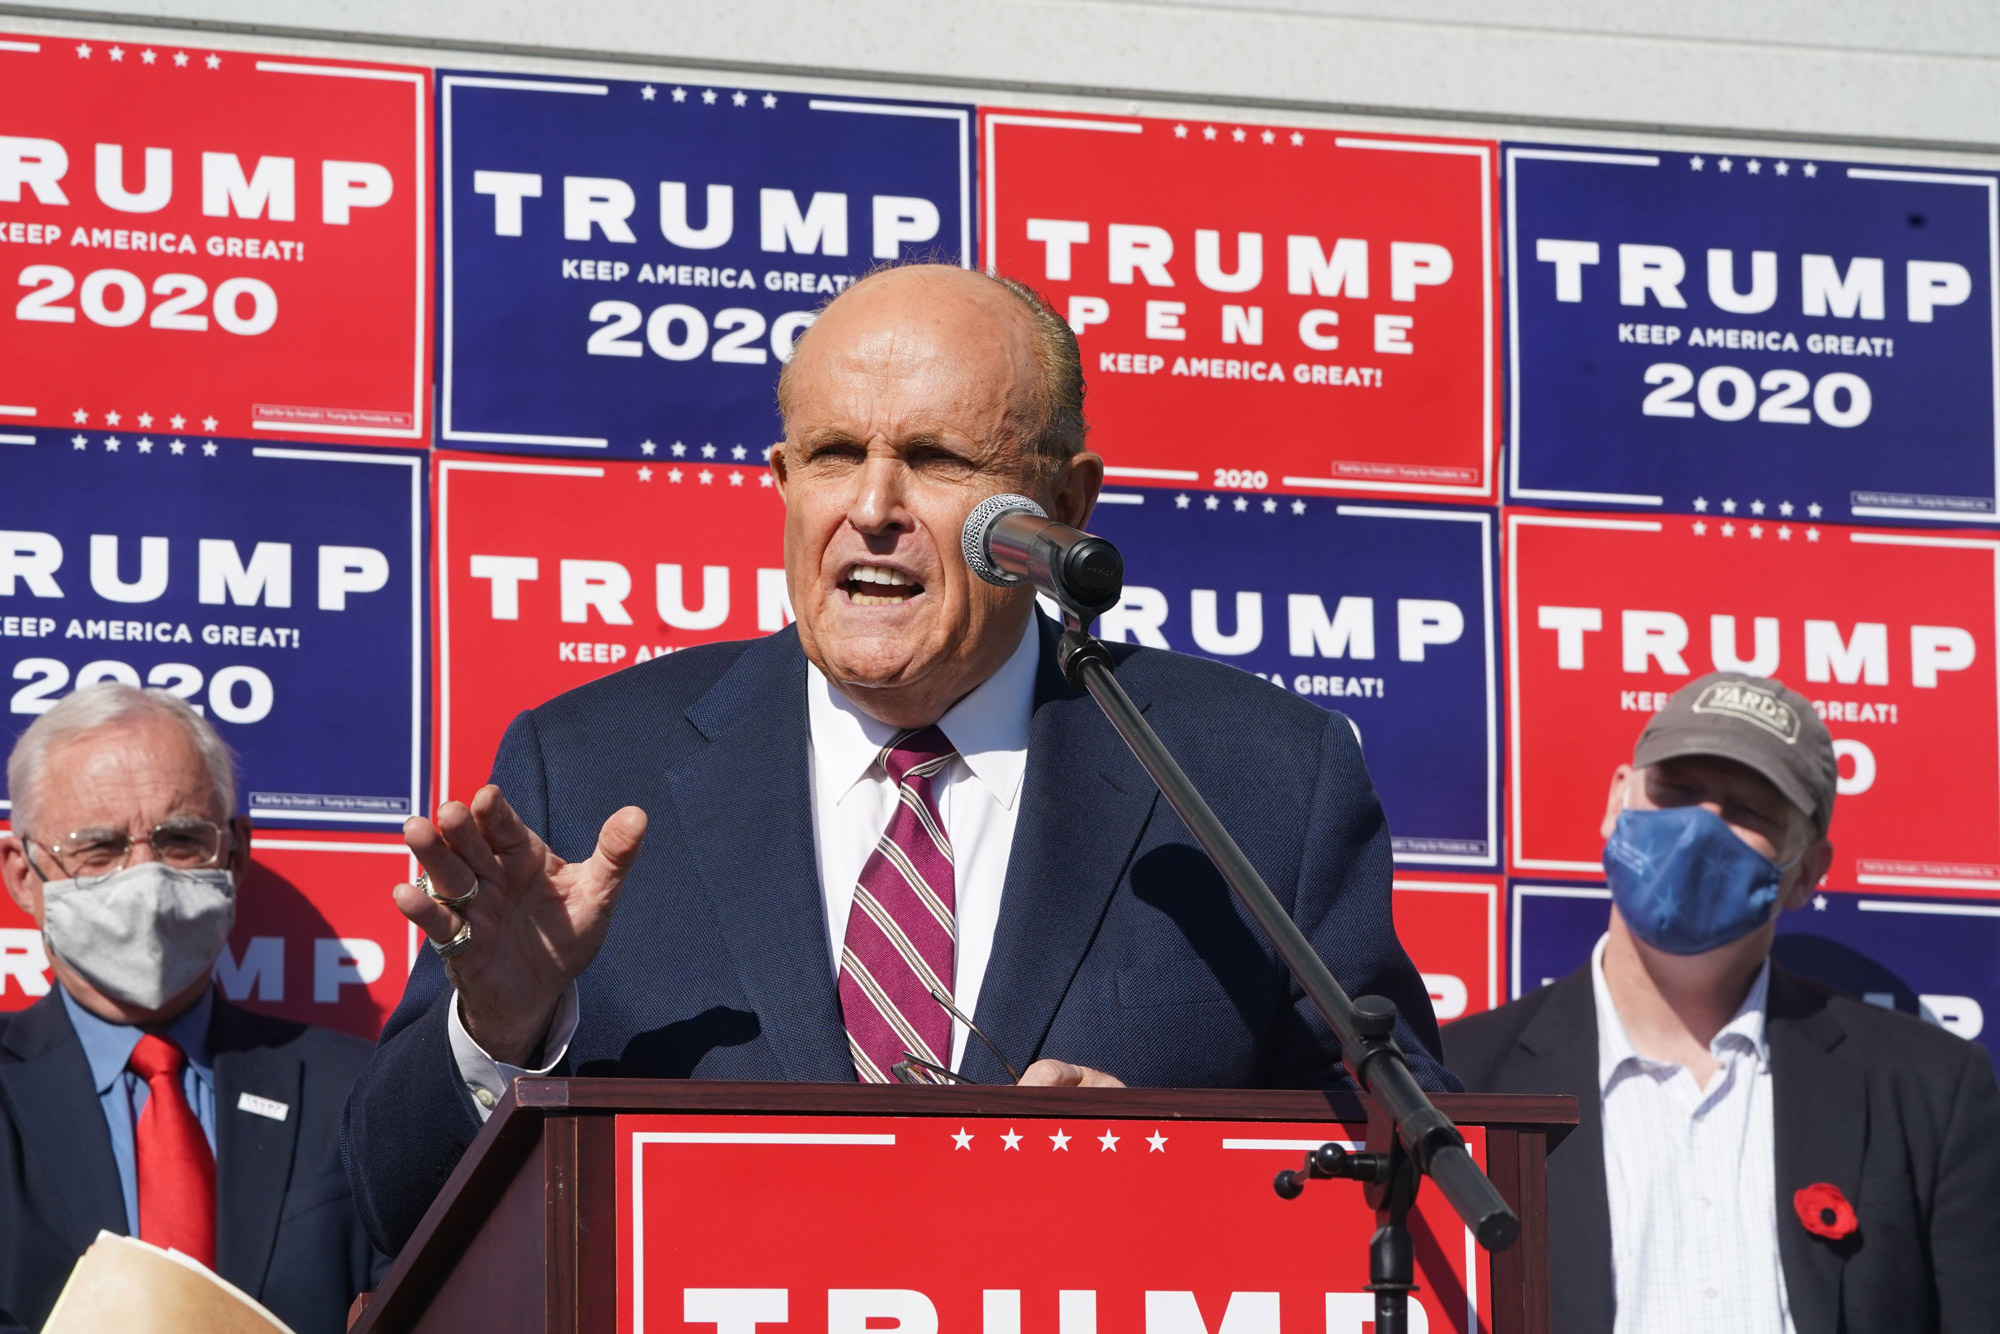 Rudy Giuliani, President Trump's personal lawyer, speaks at a news conference in the parking lot of a landscaping company on November 7 in Philadelphia.